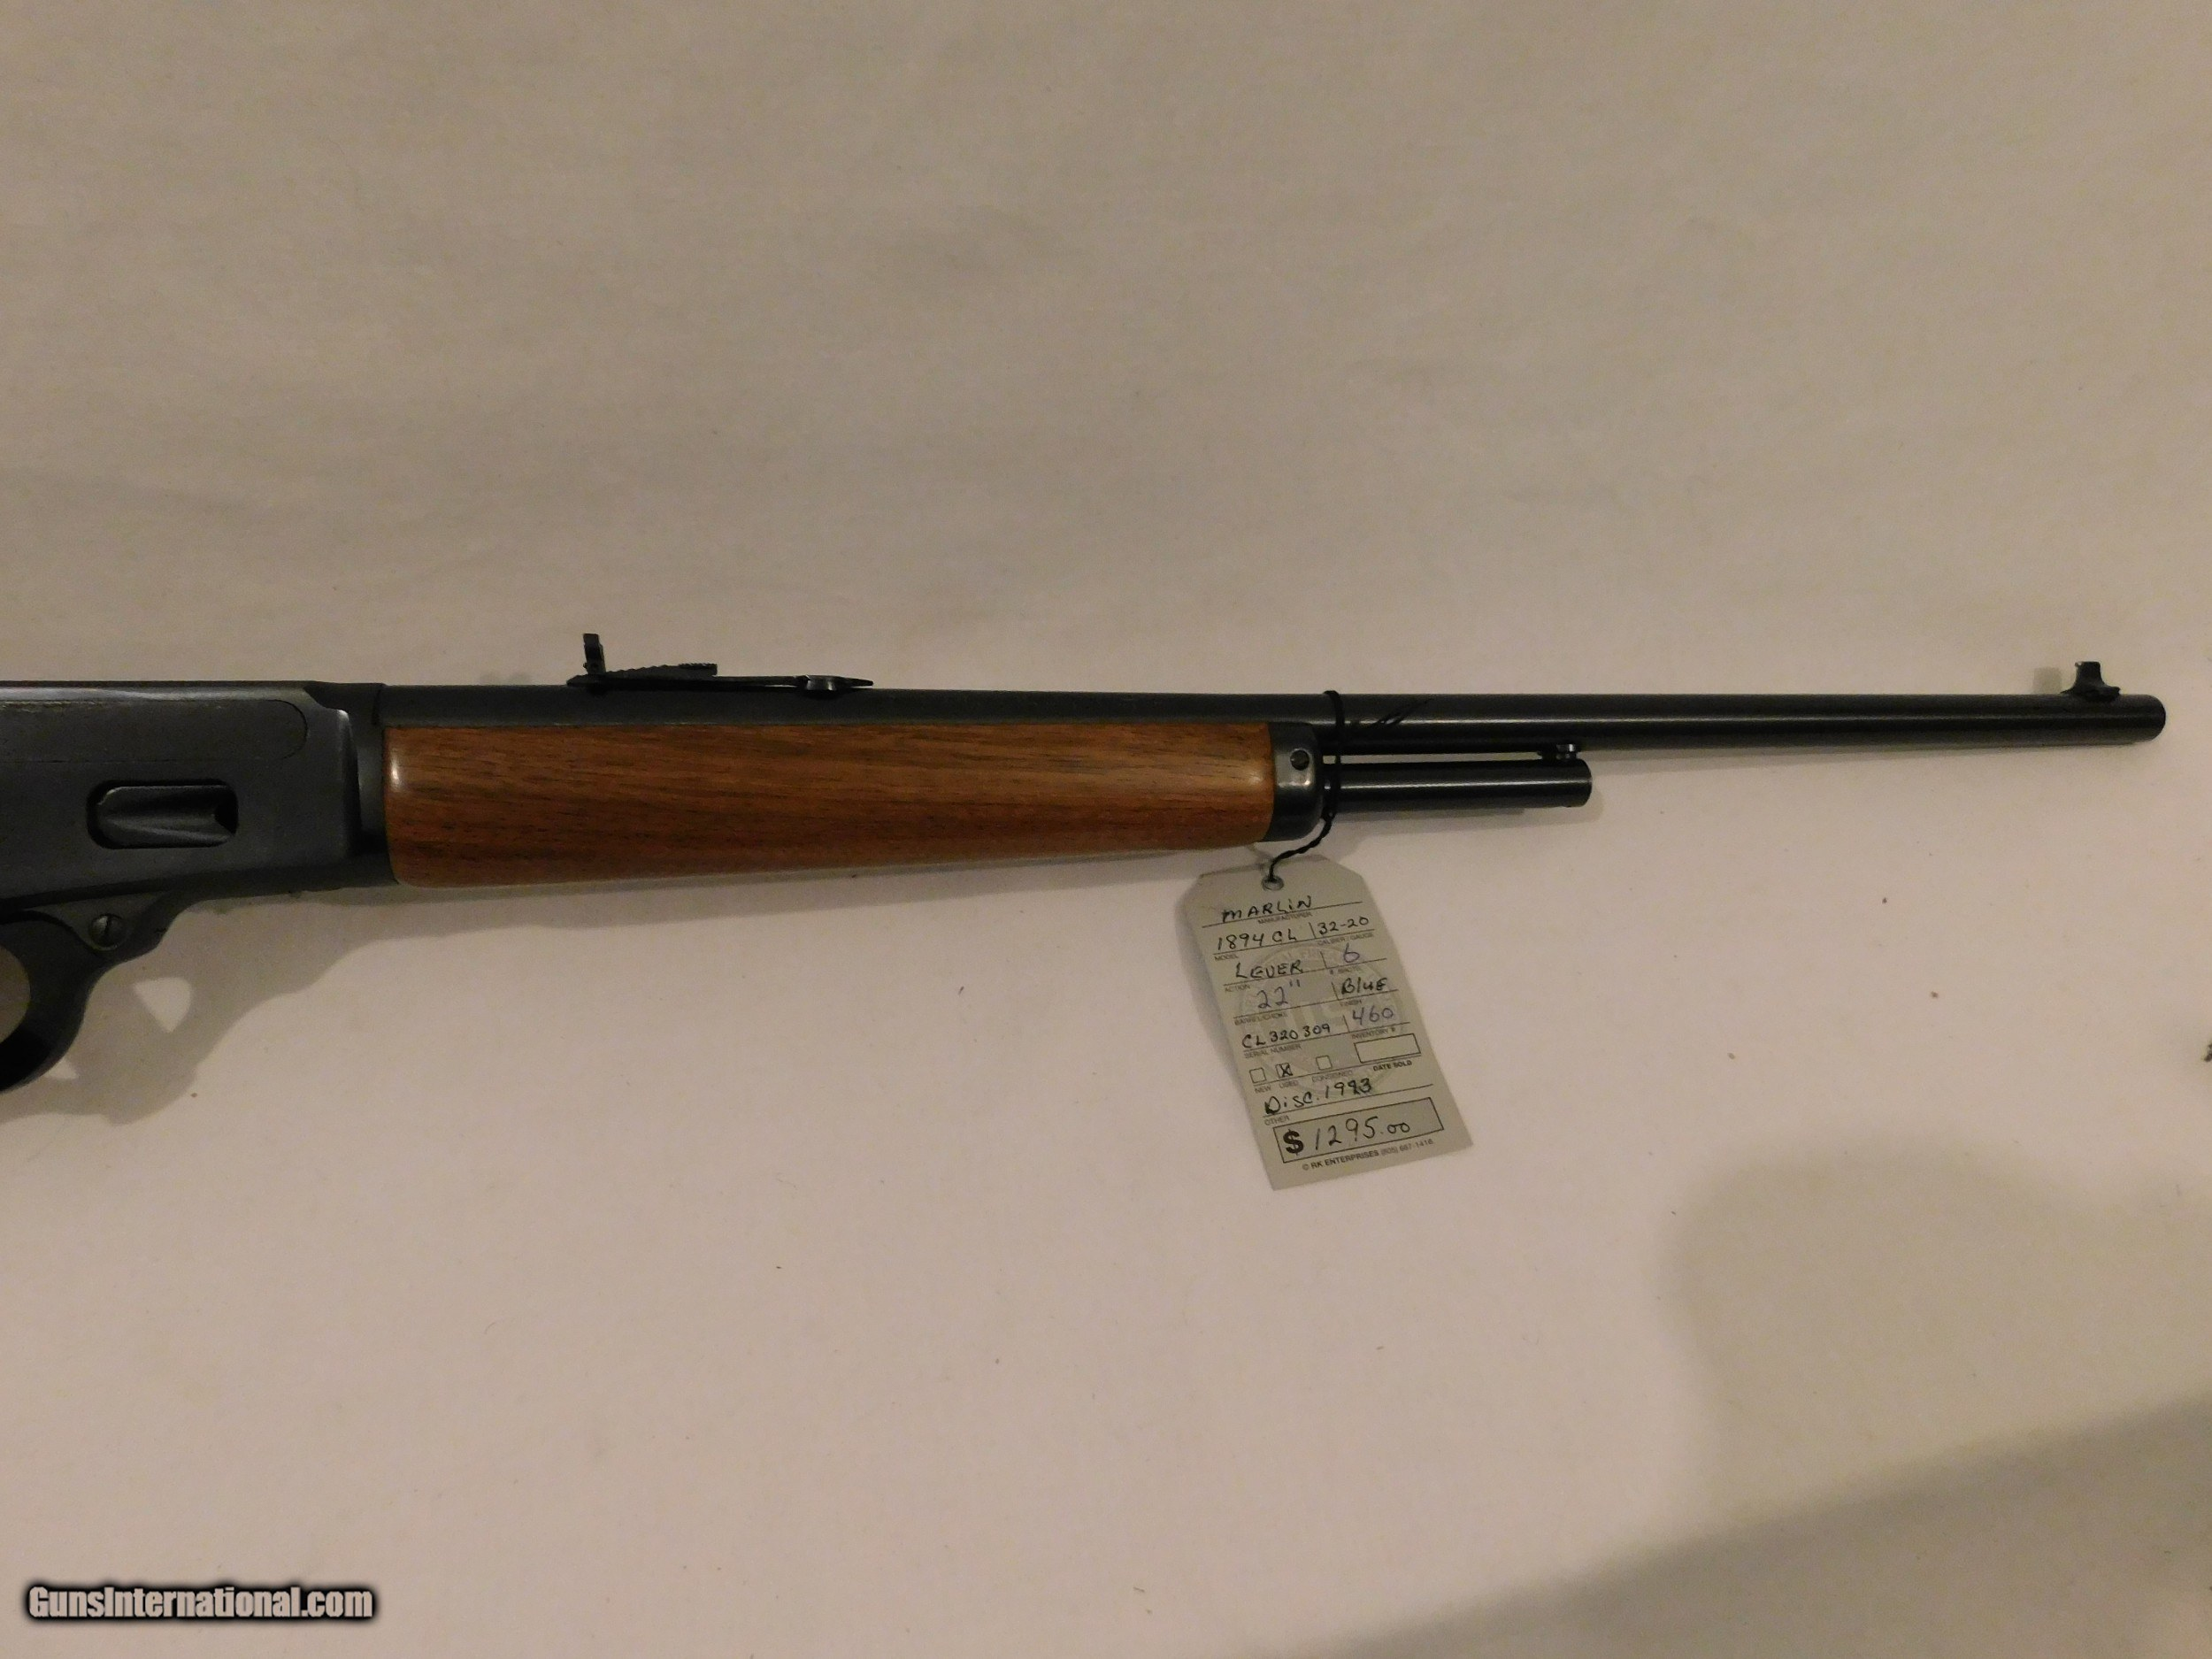 A bit different either more forceful or impatient with him at this marlin rifle serial number dating Im.